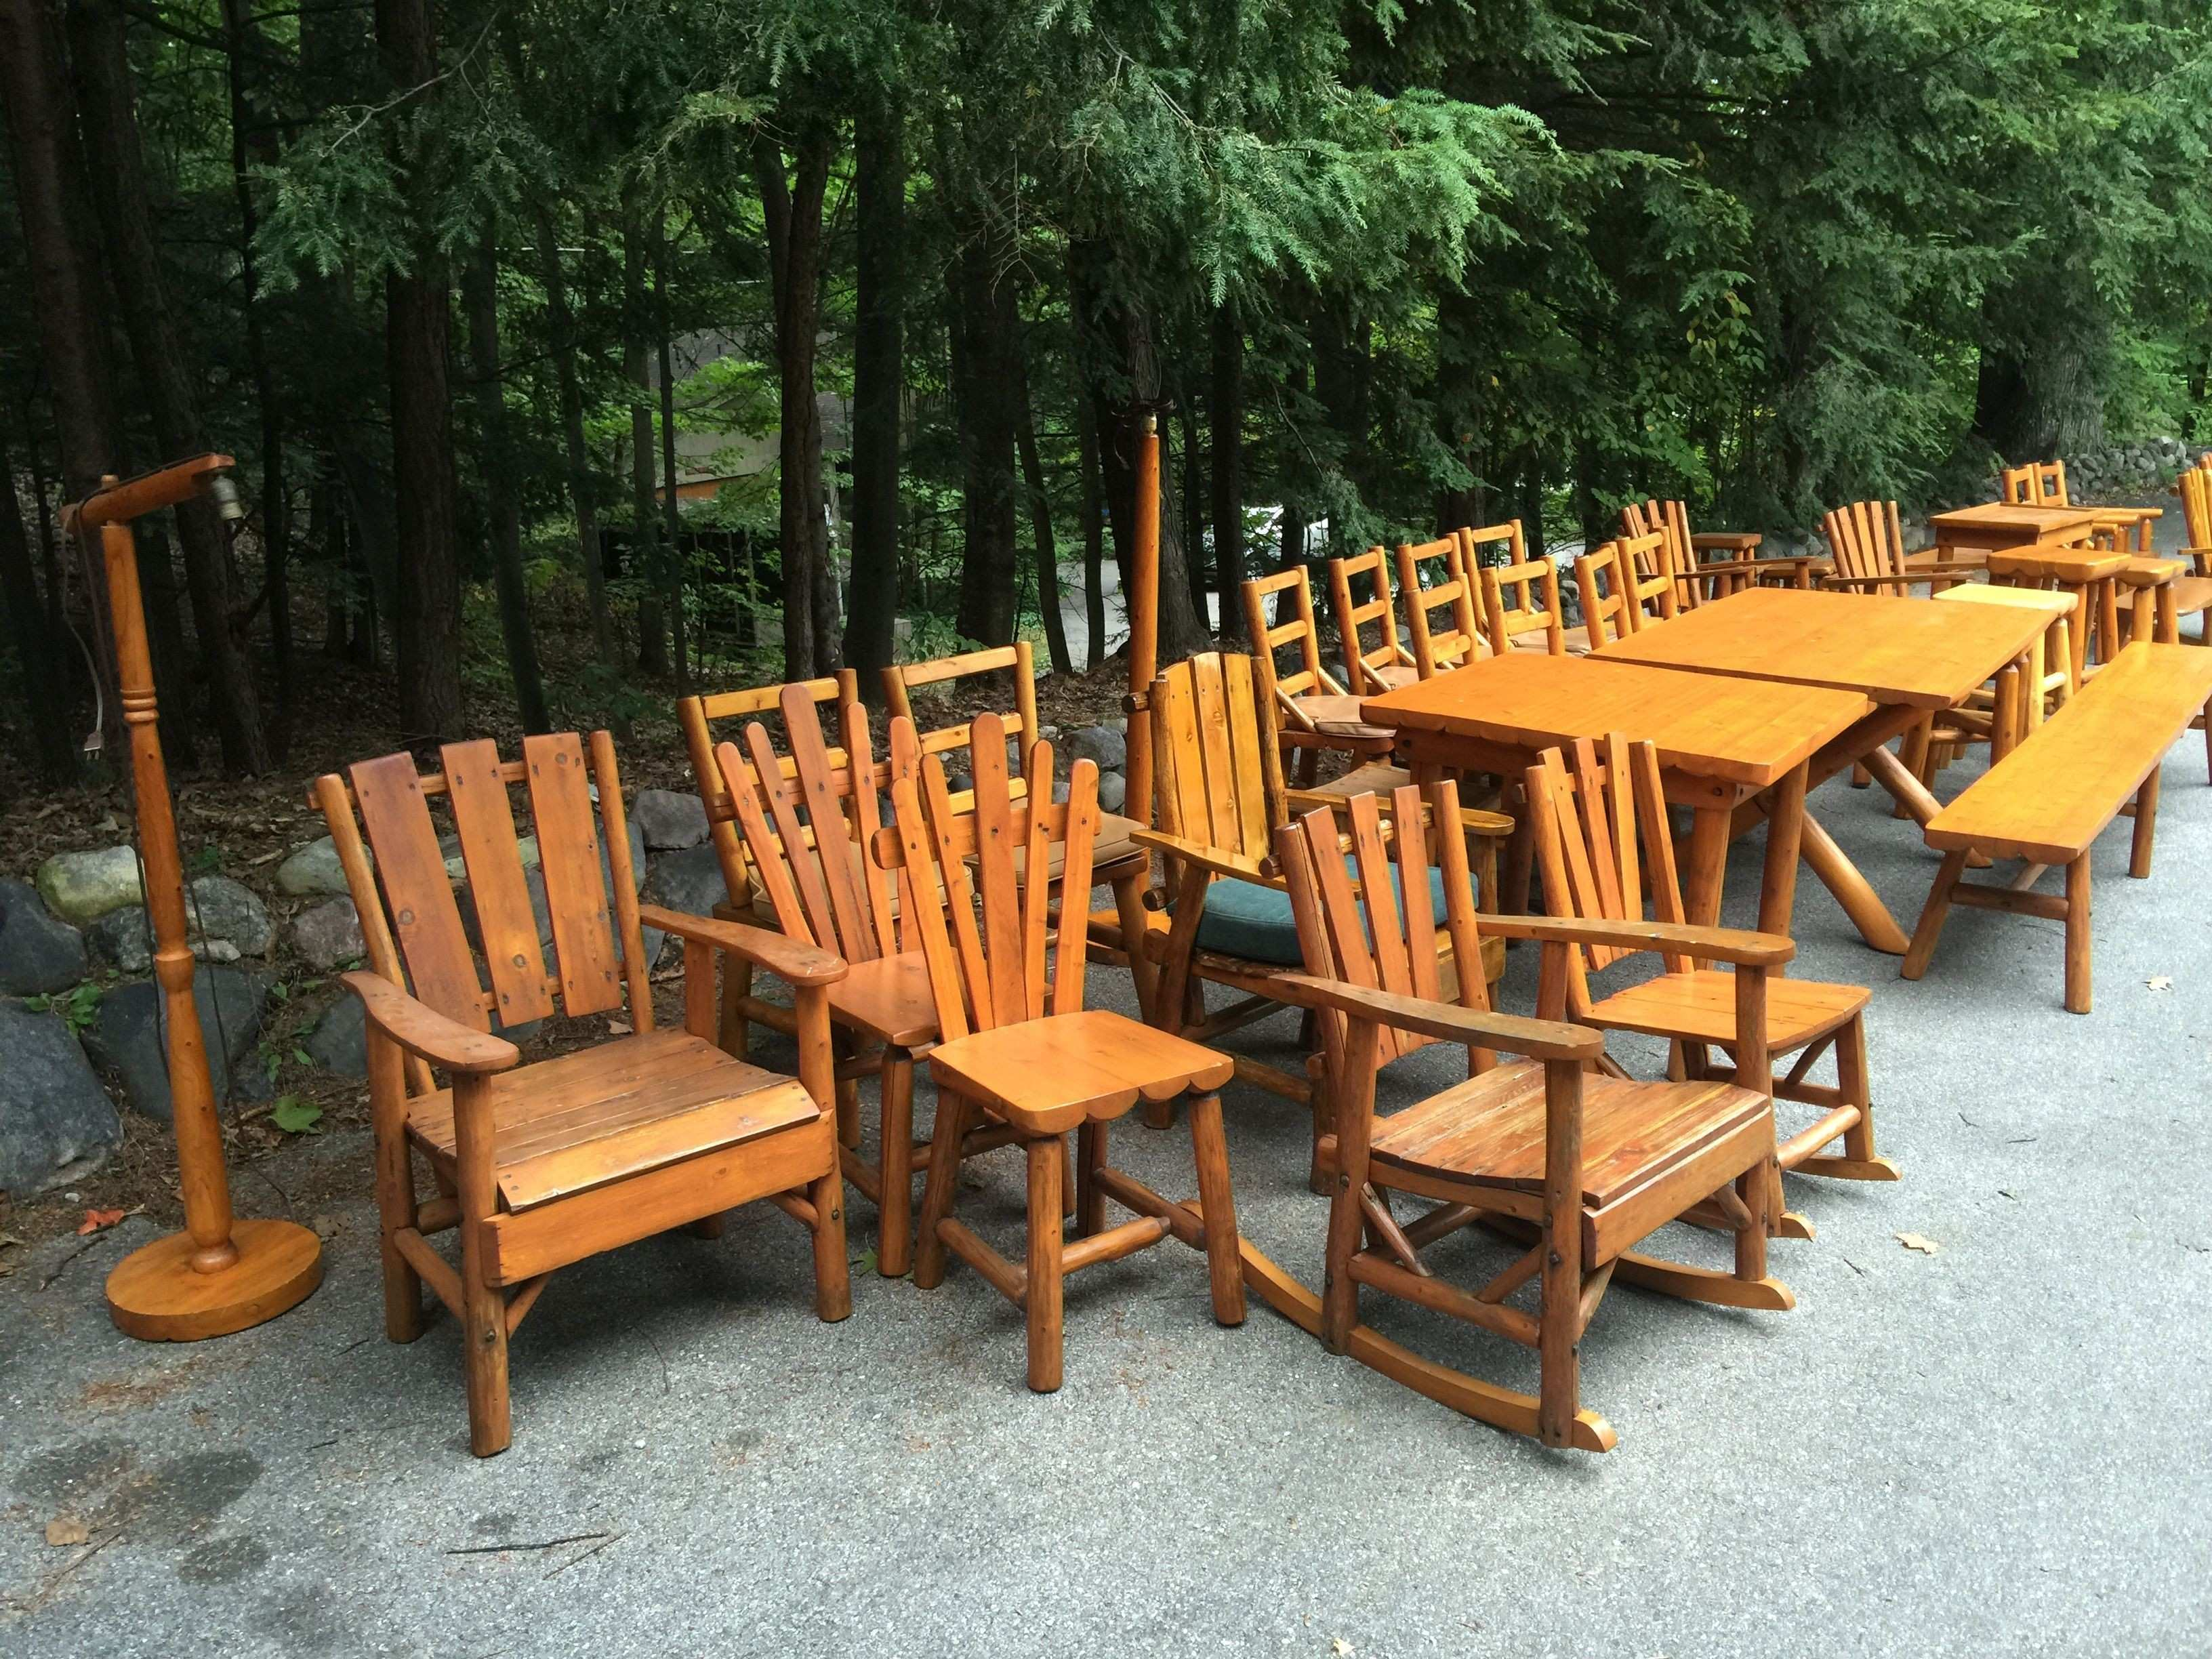 46 pcs of Rittenhouse log furniture from a northern Michigan